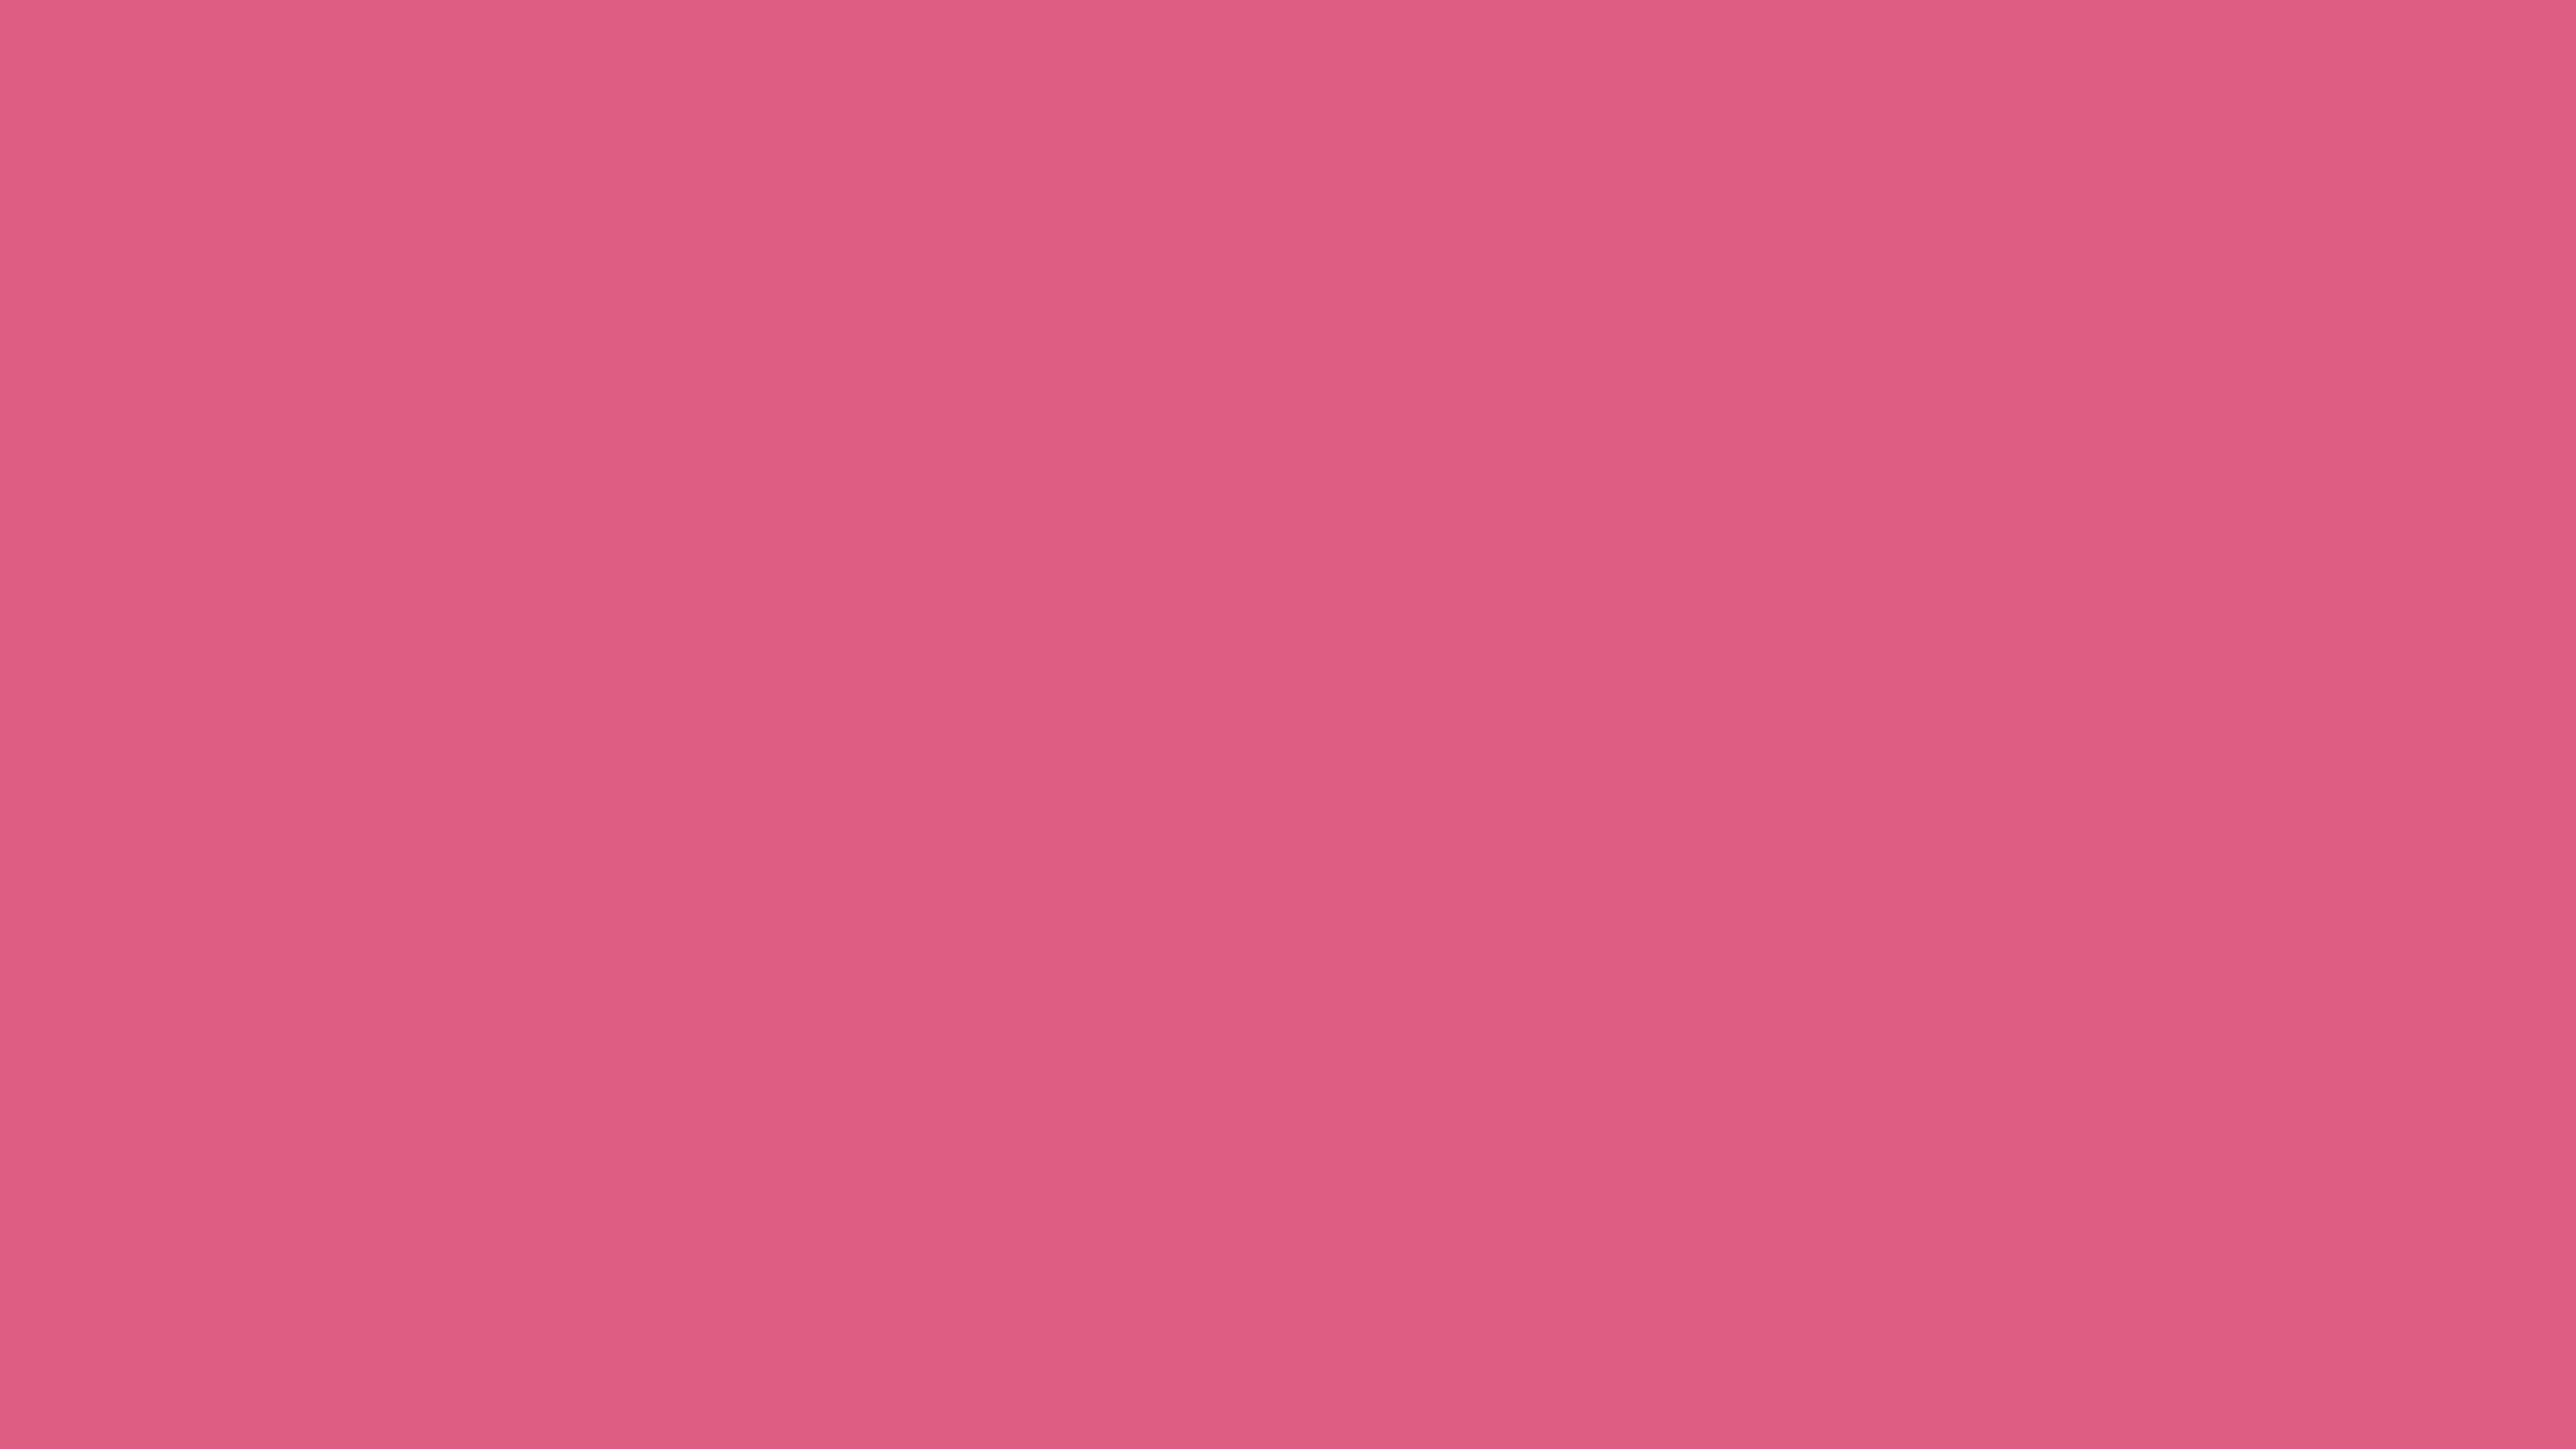 7680x4320 Blush Solid Color Background